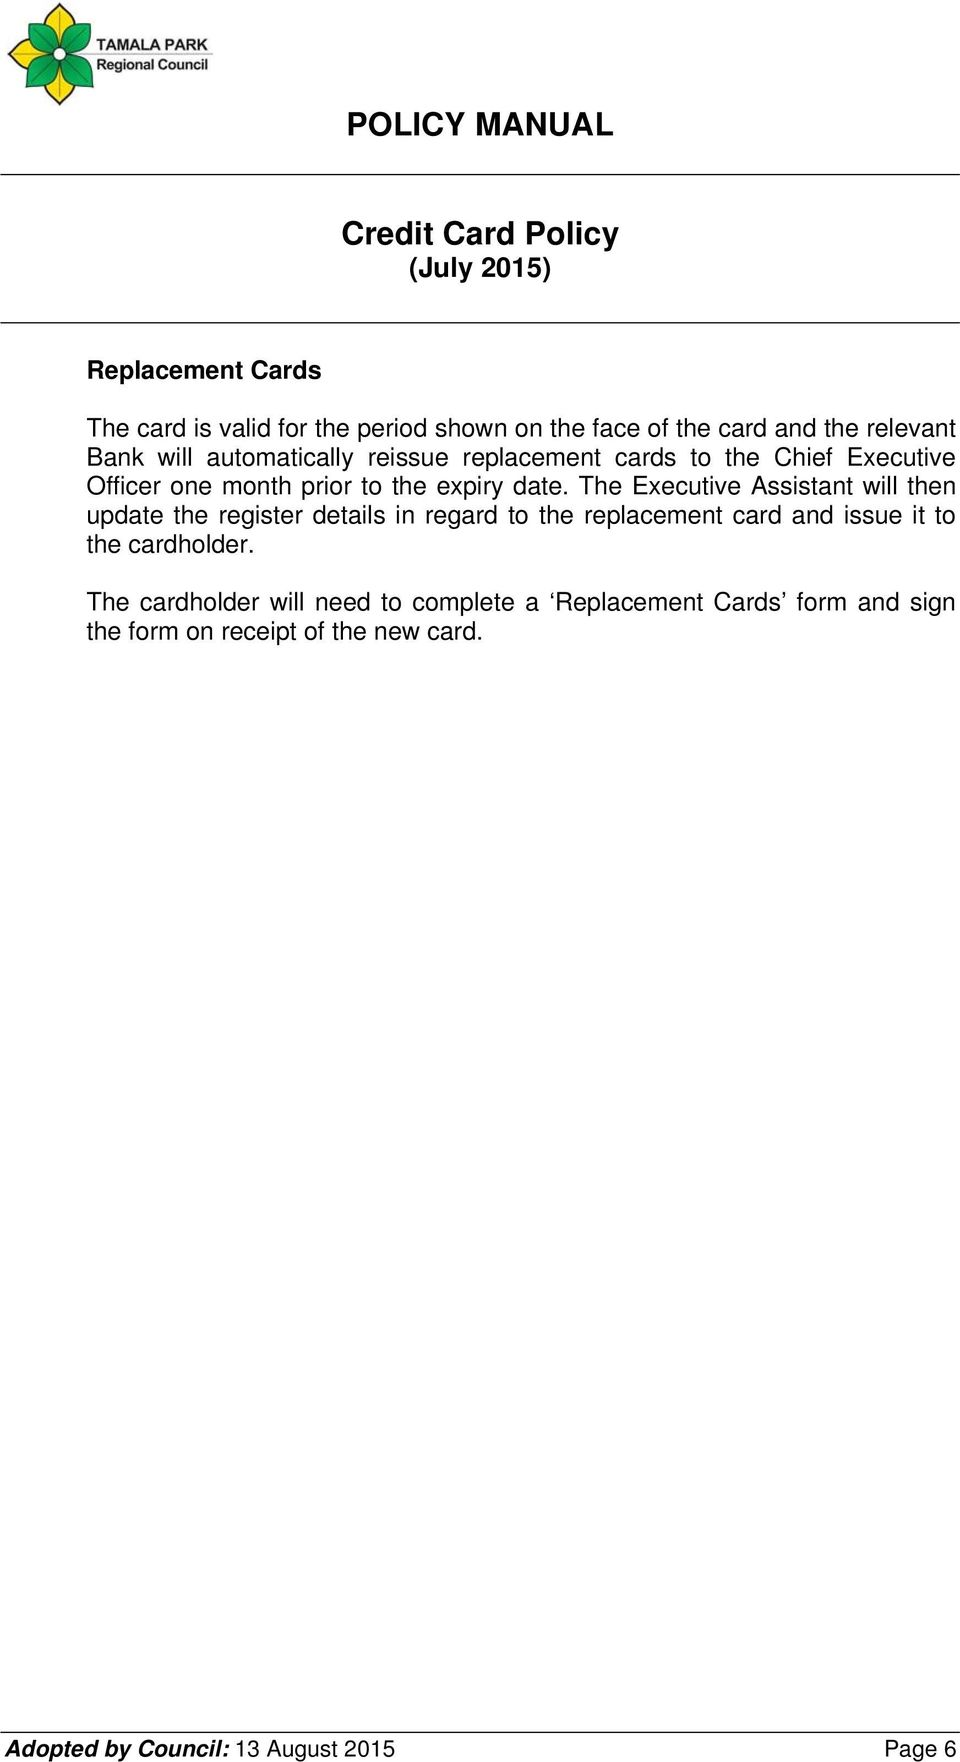 The Executive Assistant will then update the register details in regard to the replacement card and issue it to the